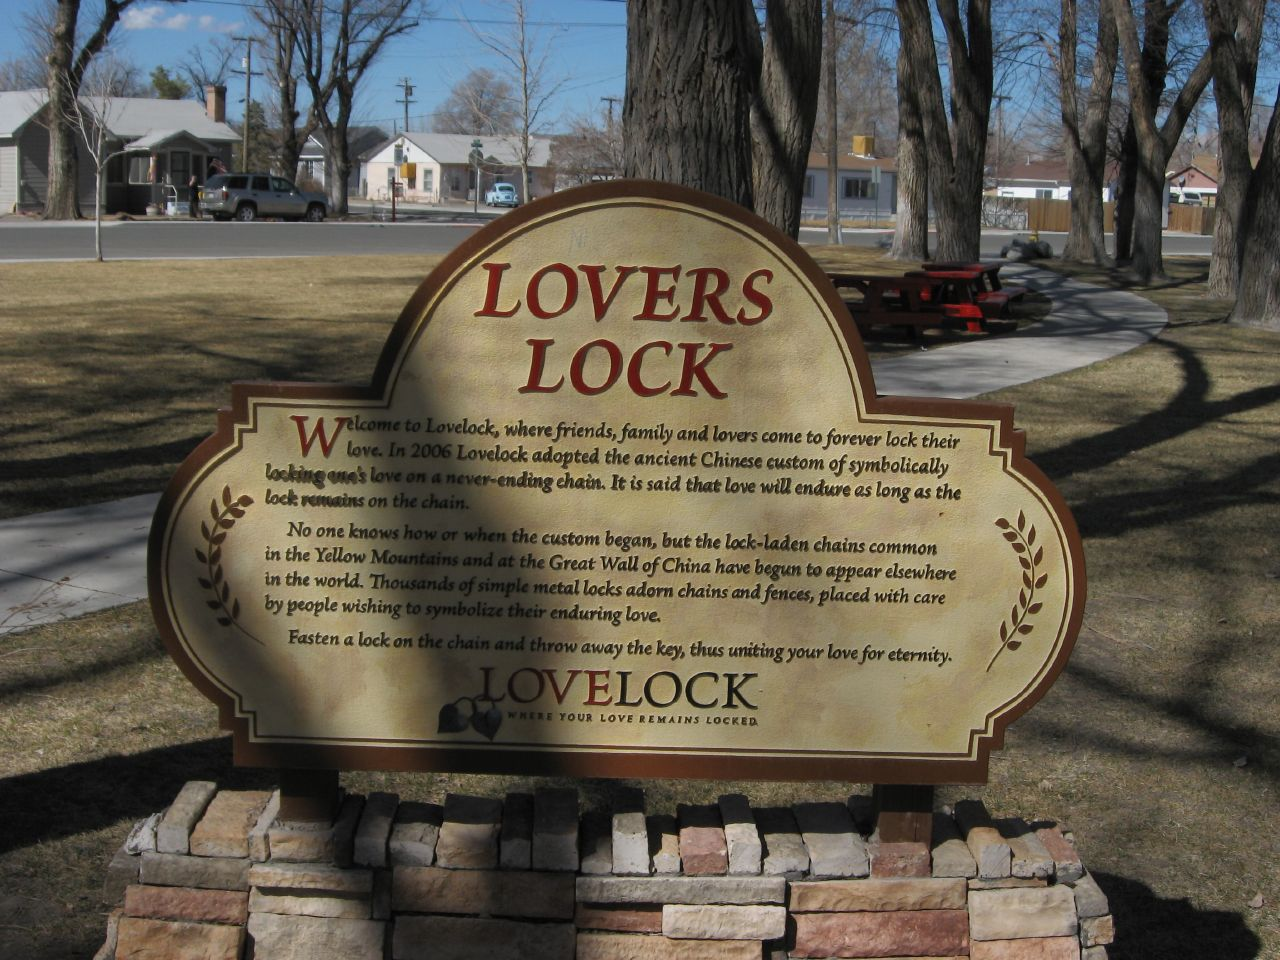 Lovers' Lock Plaza